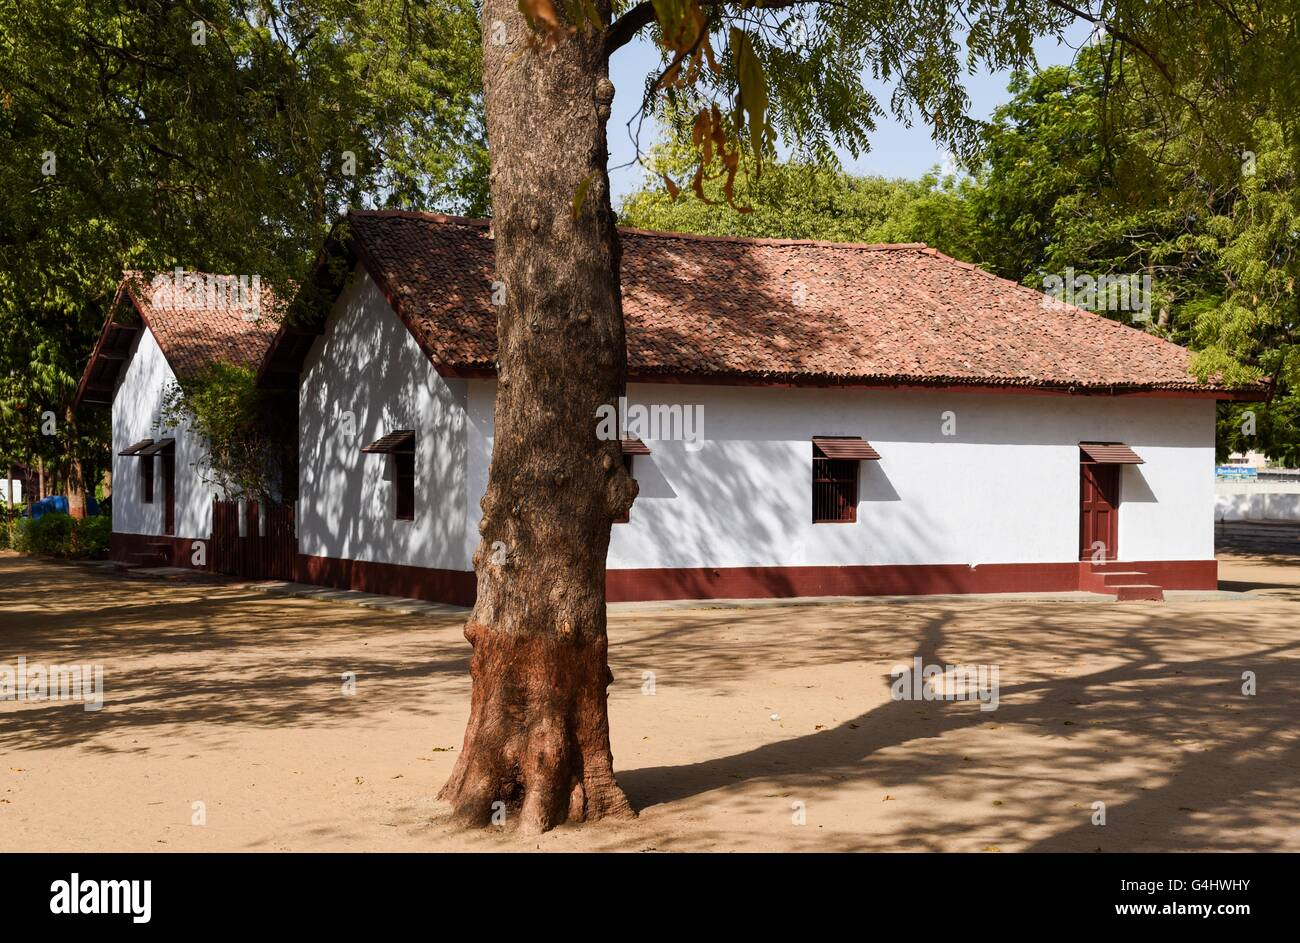 Huts in Sabarmati Ashram near Ahmedabad, India - Stock Image